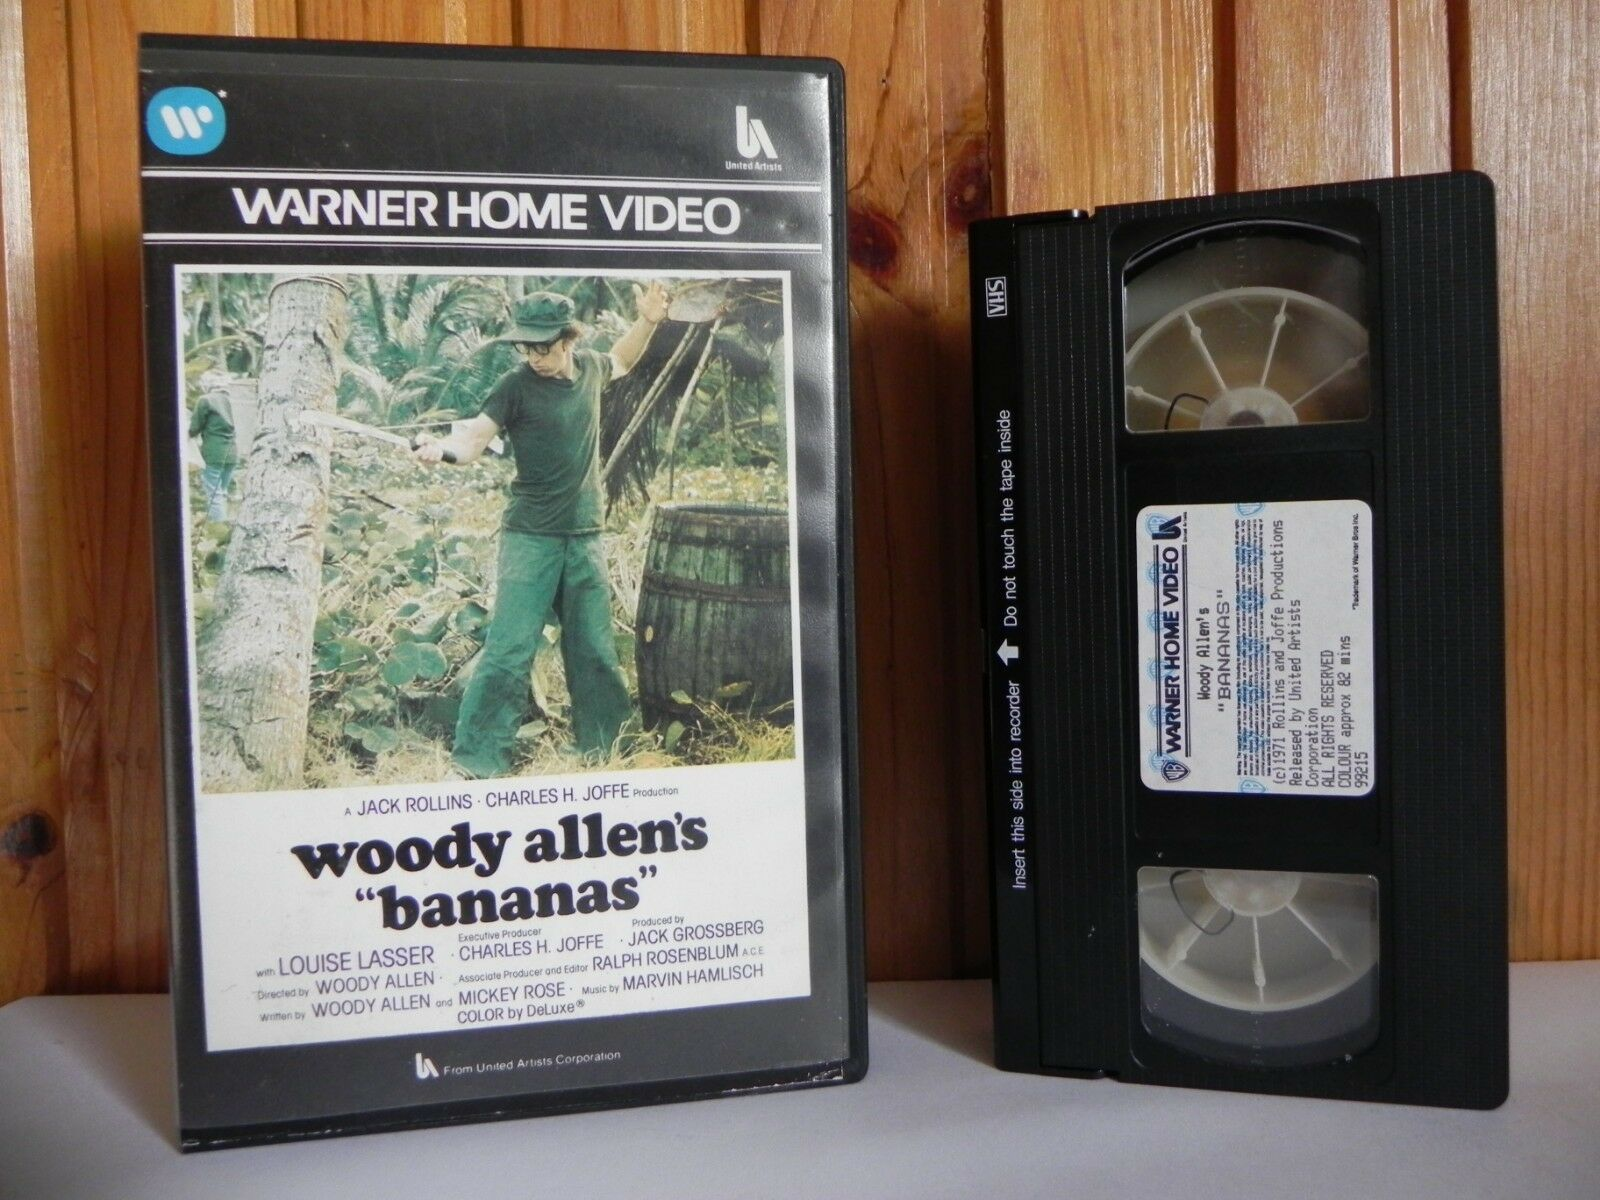 Bananas - Large Box - Warner - Pre-Cert - Comedy - Woody Allen (1979) - Pal VHS